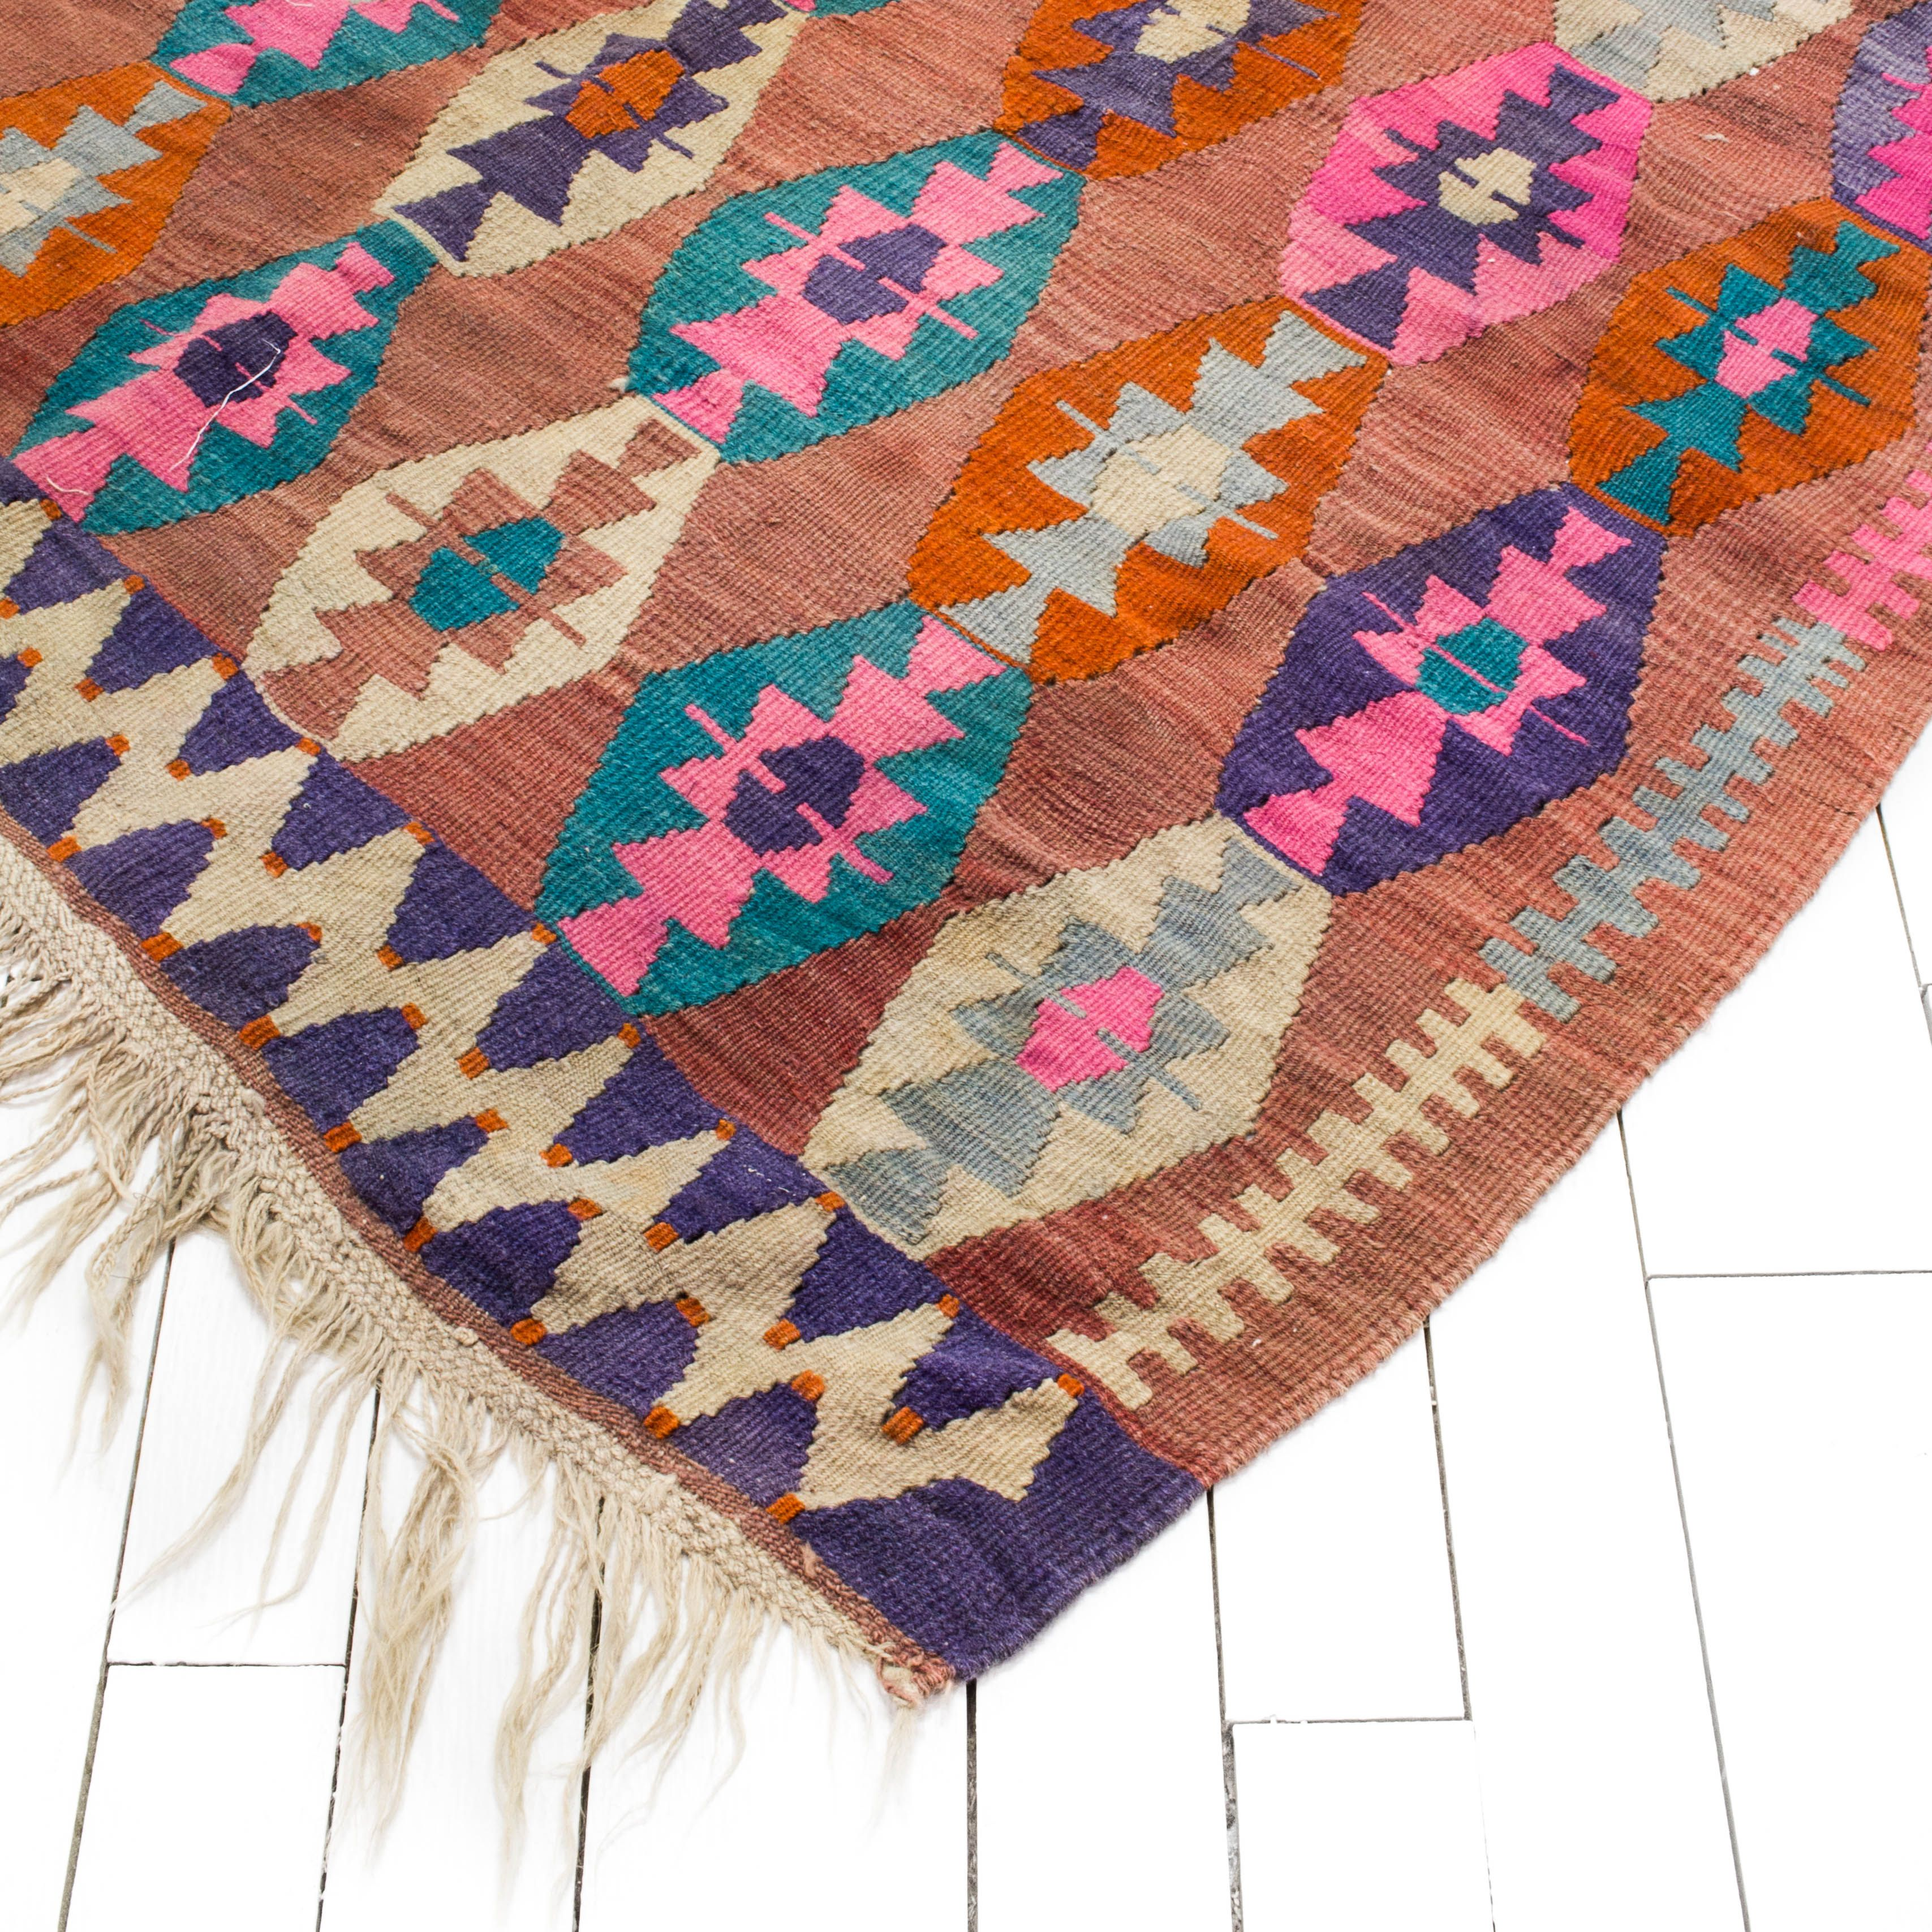 Our Collection Of Vintage And Modern Rental Furnishings With Images Southwestern Style Rugs Rugs Multicolored Rugs